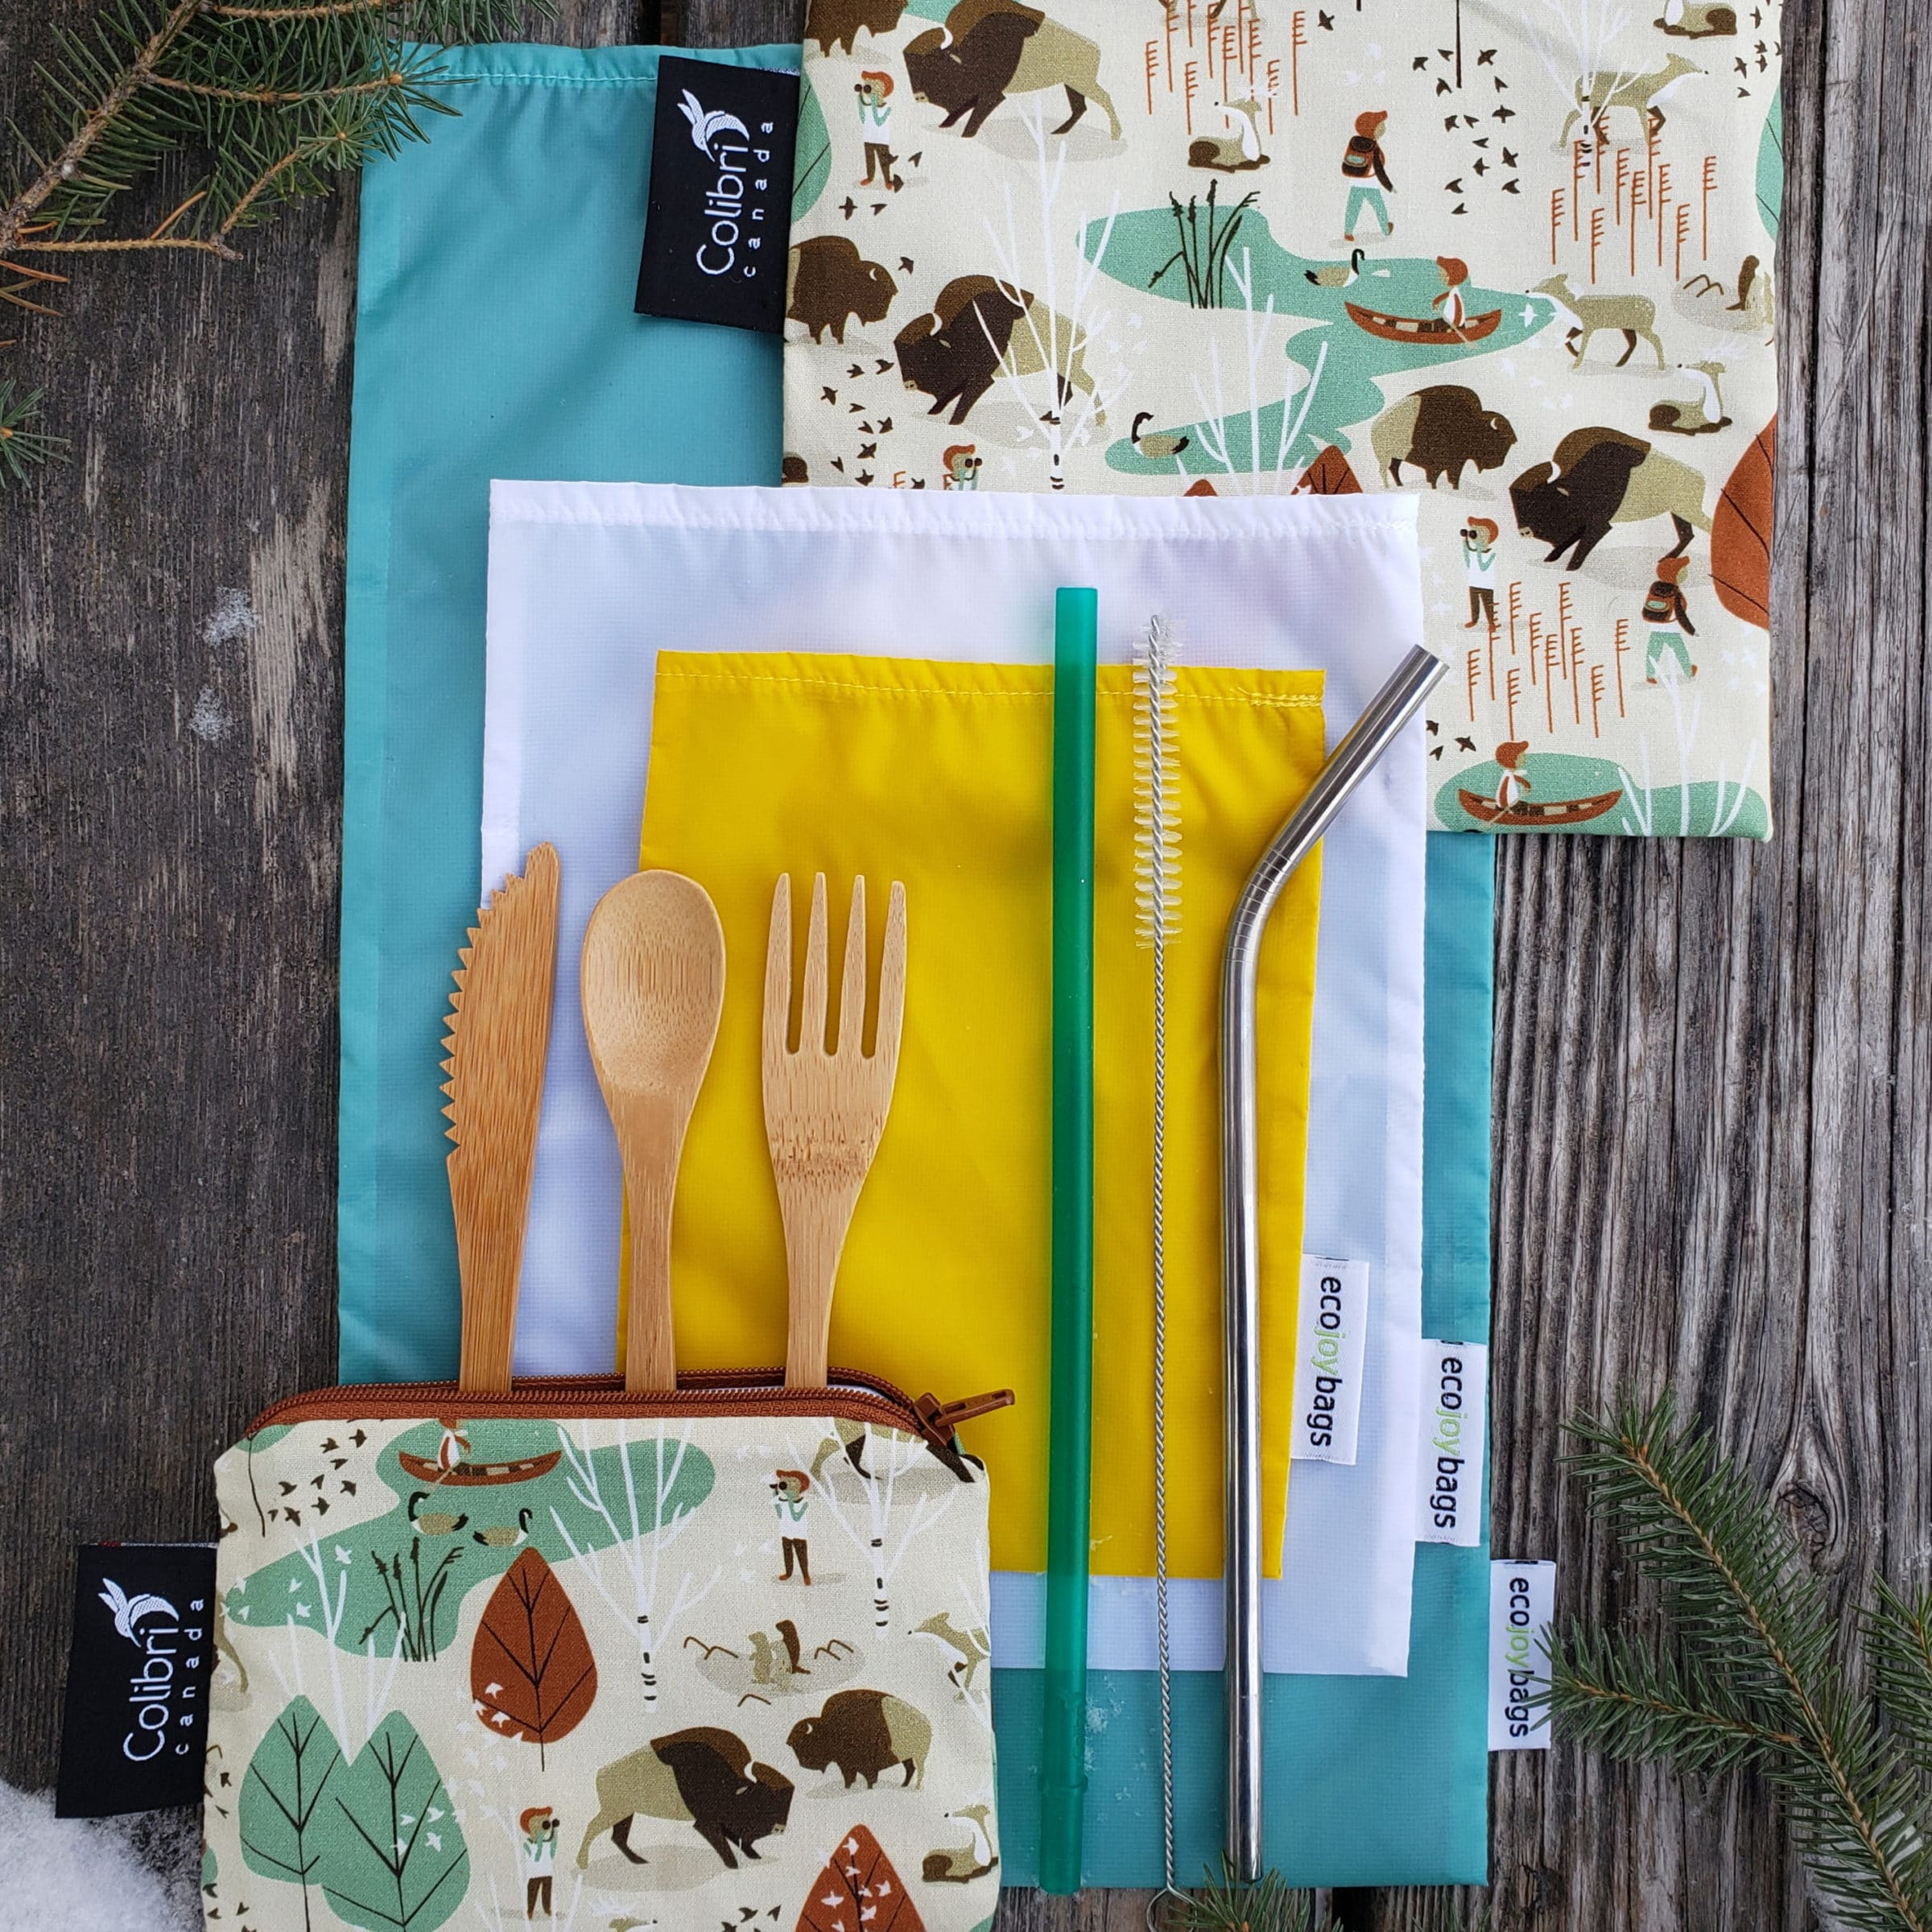 Sustainable supplies from the Nature Shop, including bamboo cutlery, a metal straw, and cloth bags.